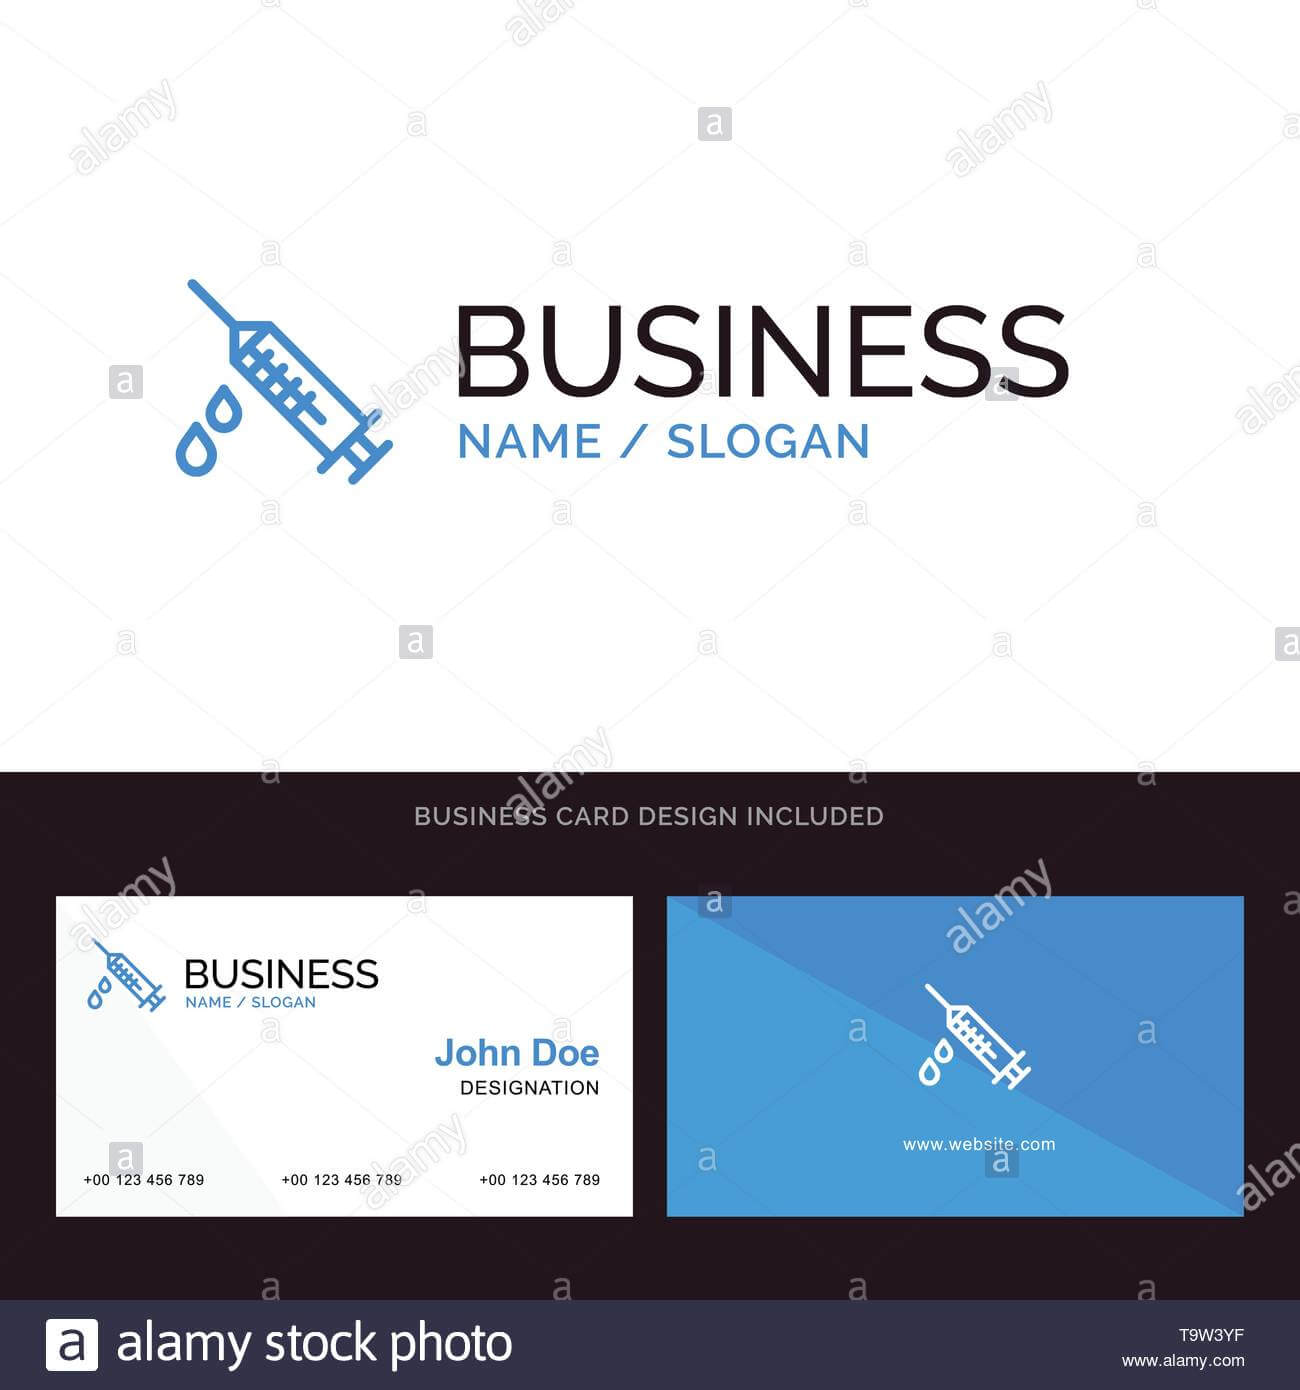 Dope, Injection, Medical, Drug Blue Business Logo And with Dope Card Template